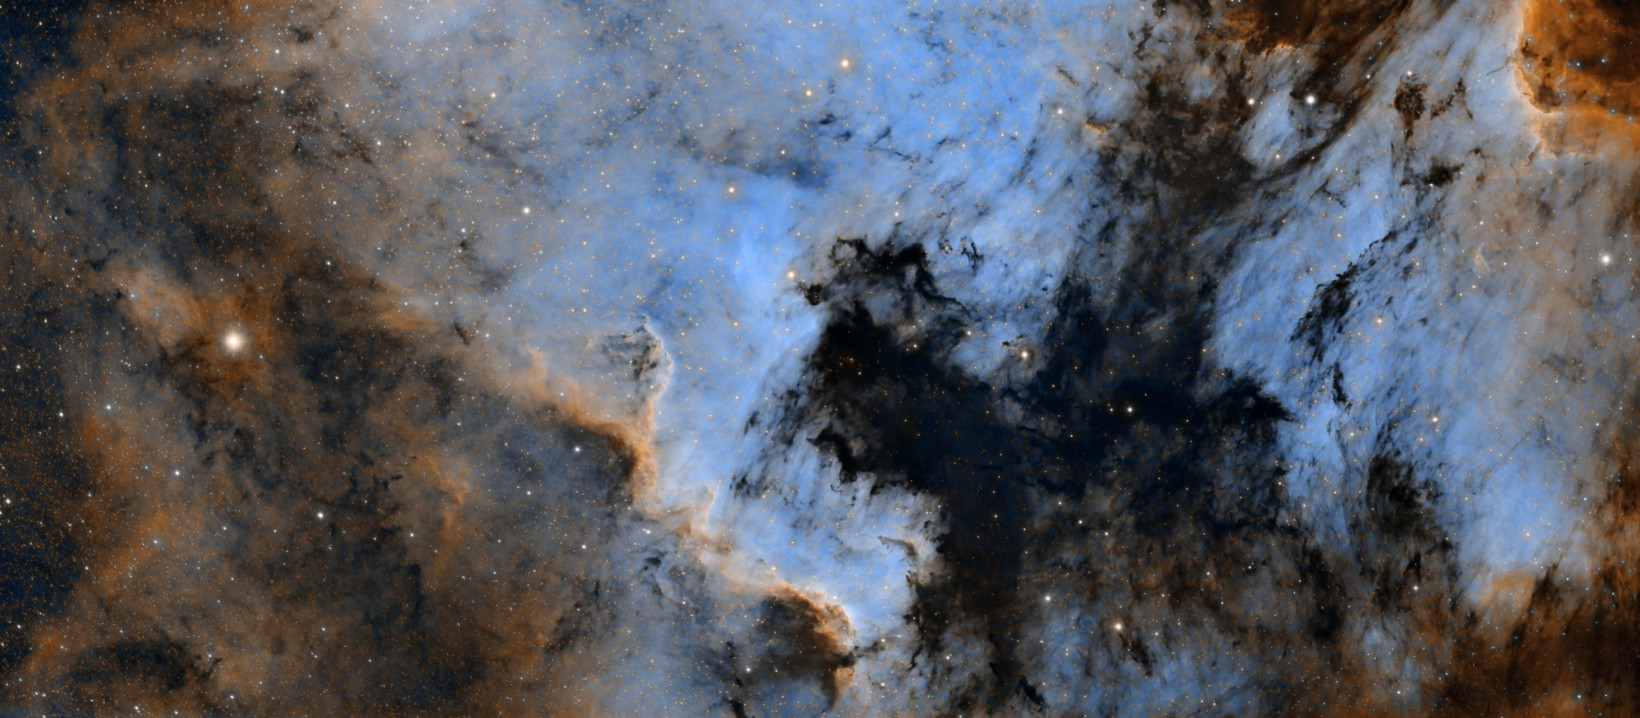 The north american nebula NGC 7000 in narrow band and high resolution. Poster available to purchase.